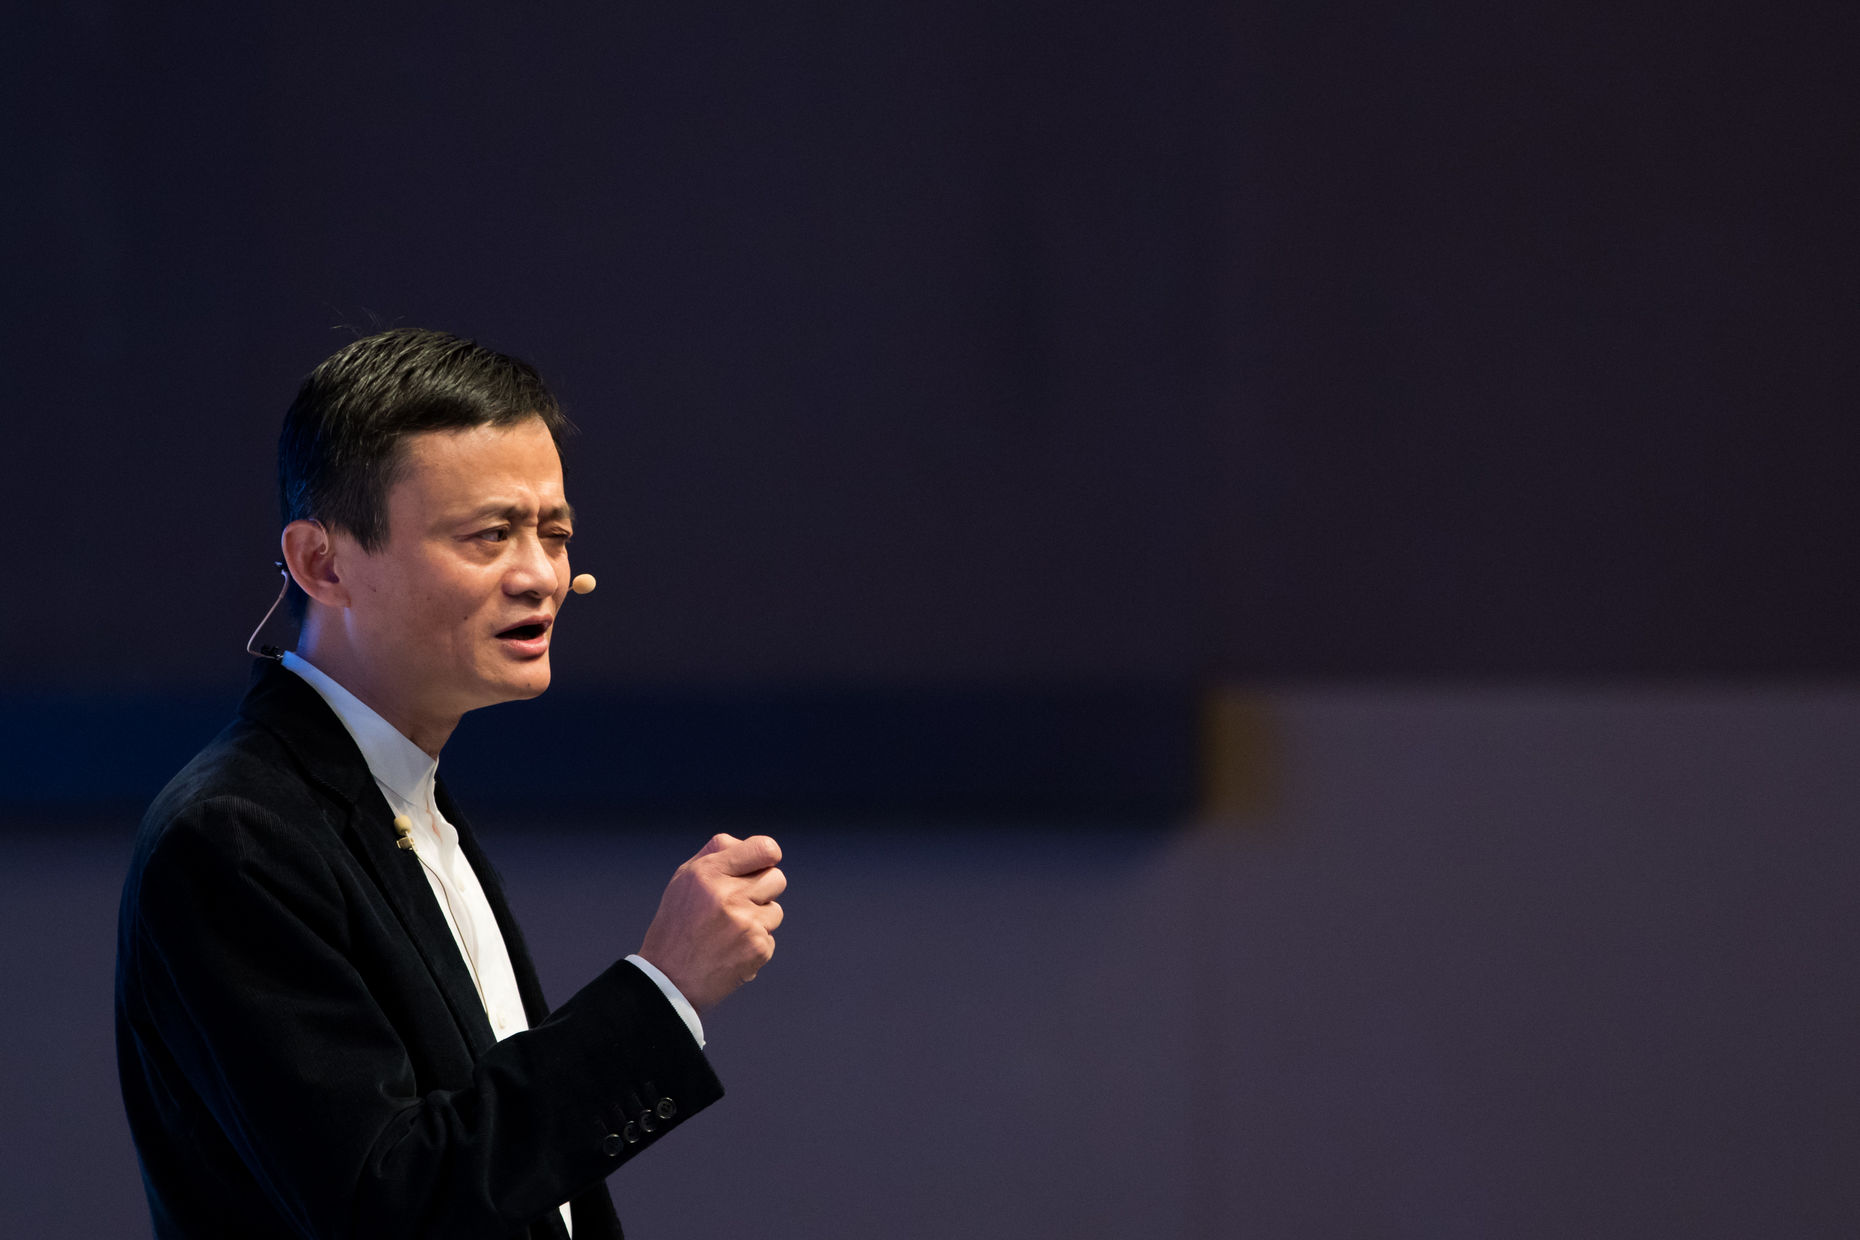 Alibaba co-founder Jack Ma. Photo by Bloomberg.